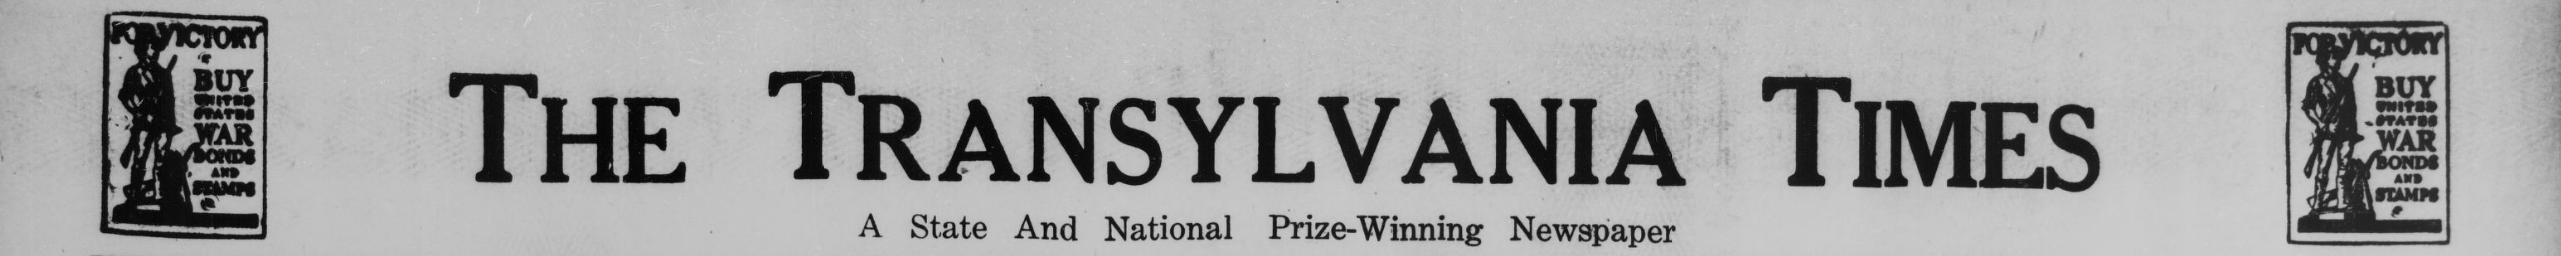 """The Transylvania Times header. Under the header reads, """"A State and National Prize-Winning Newspaper."""""""